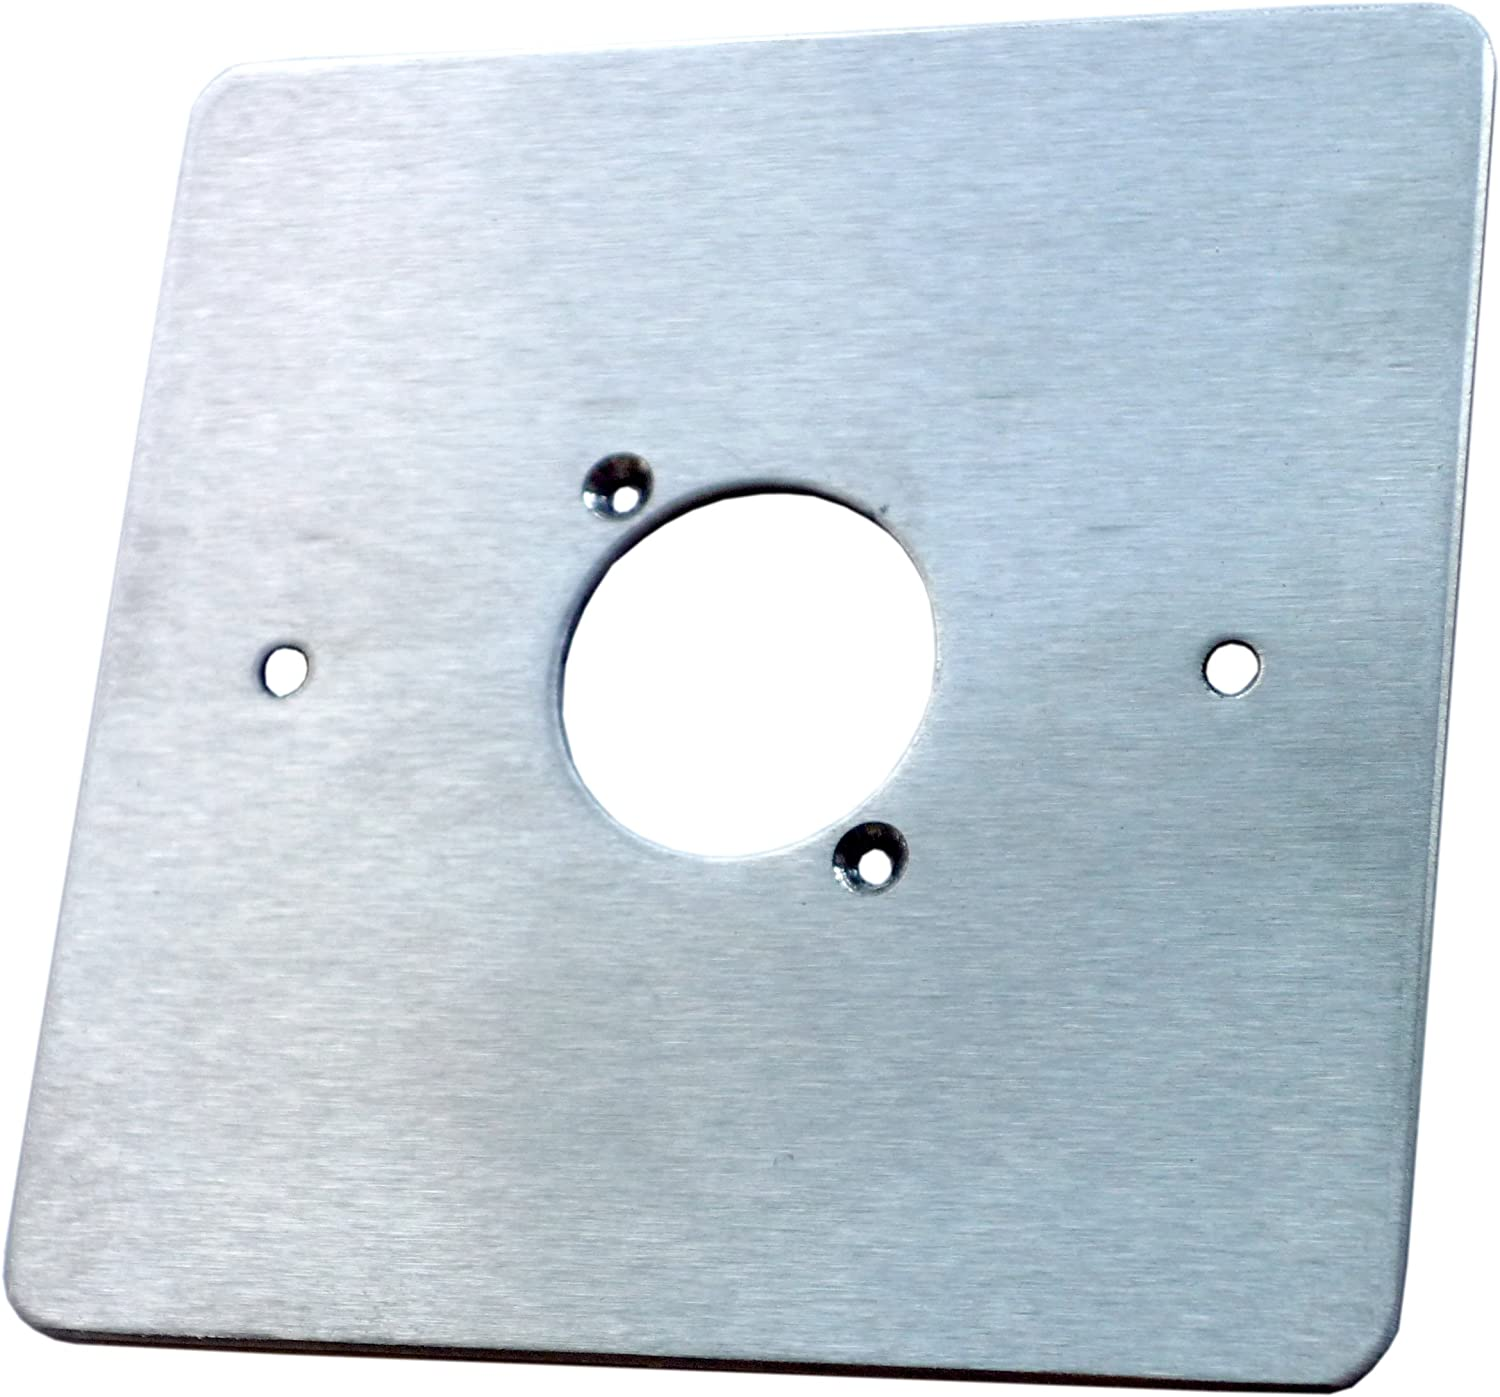 AllMetalParts 1 XLR Single Gang Face Plate Brushed Stainless